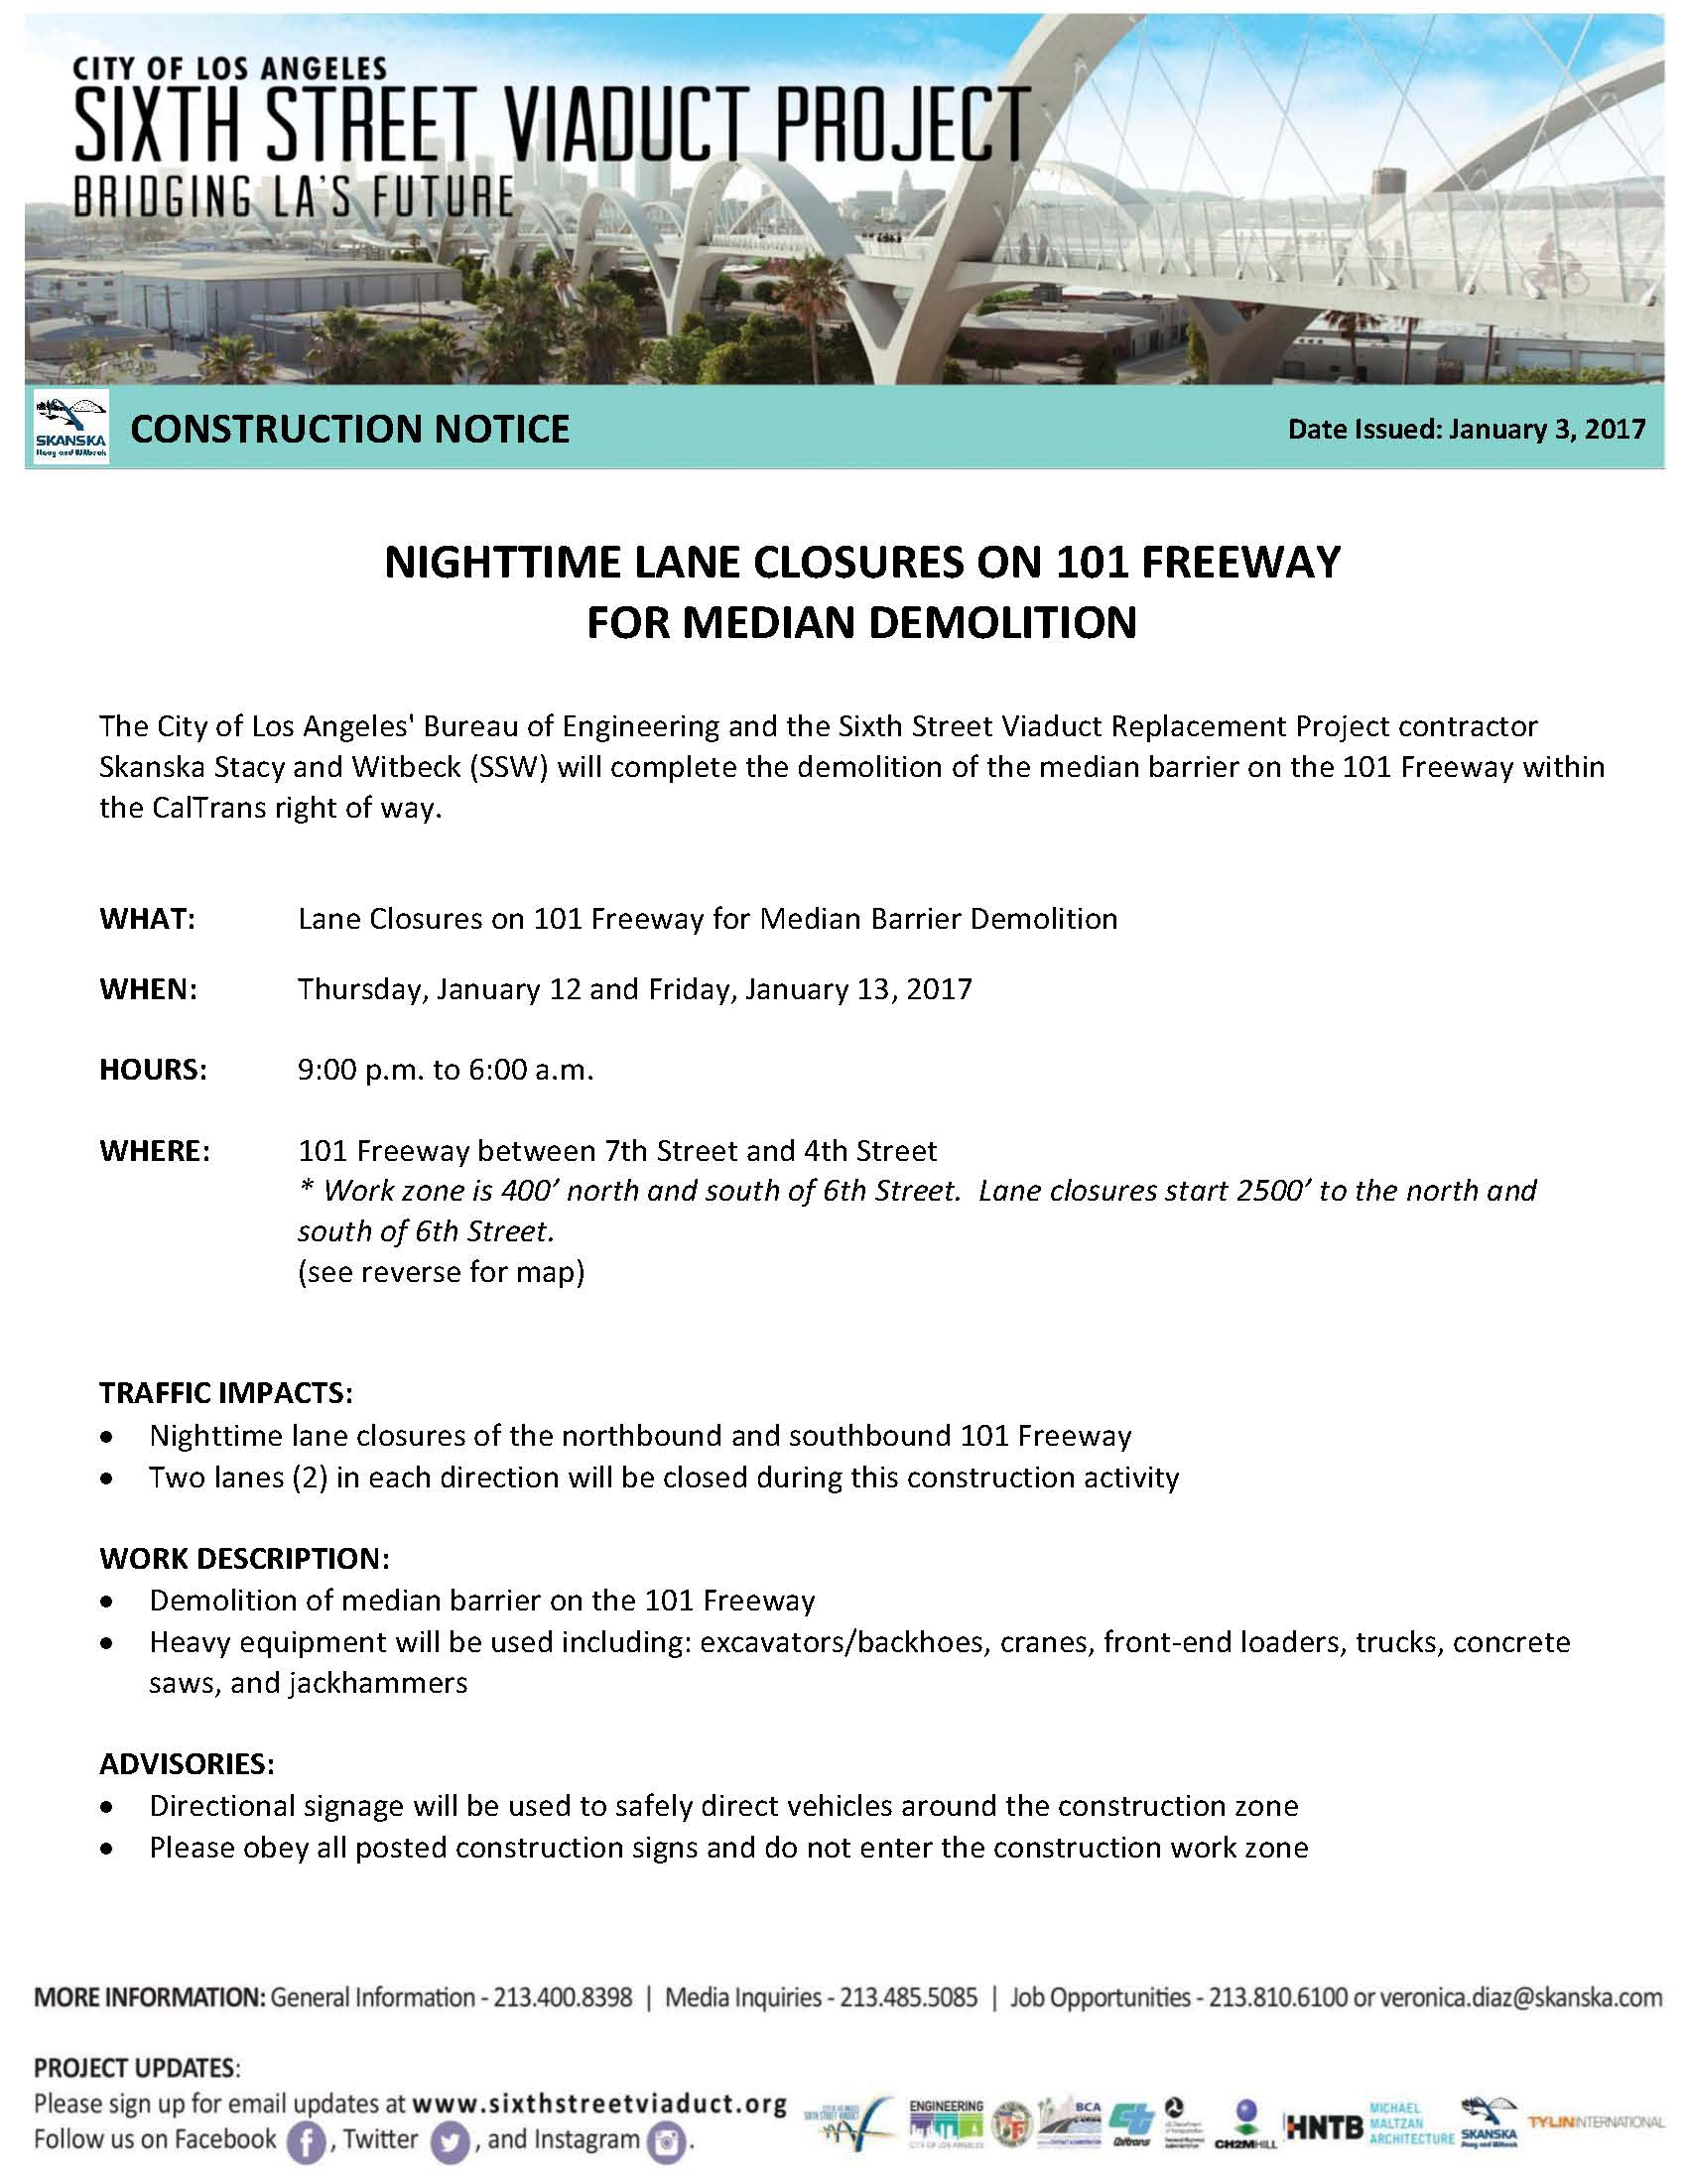 2017-01-03_Construction_Notice_-_Nighttime_101_Fwy_Lane_Closures_for_Median_Demolition_Page_1.jpg